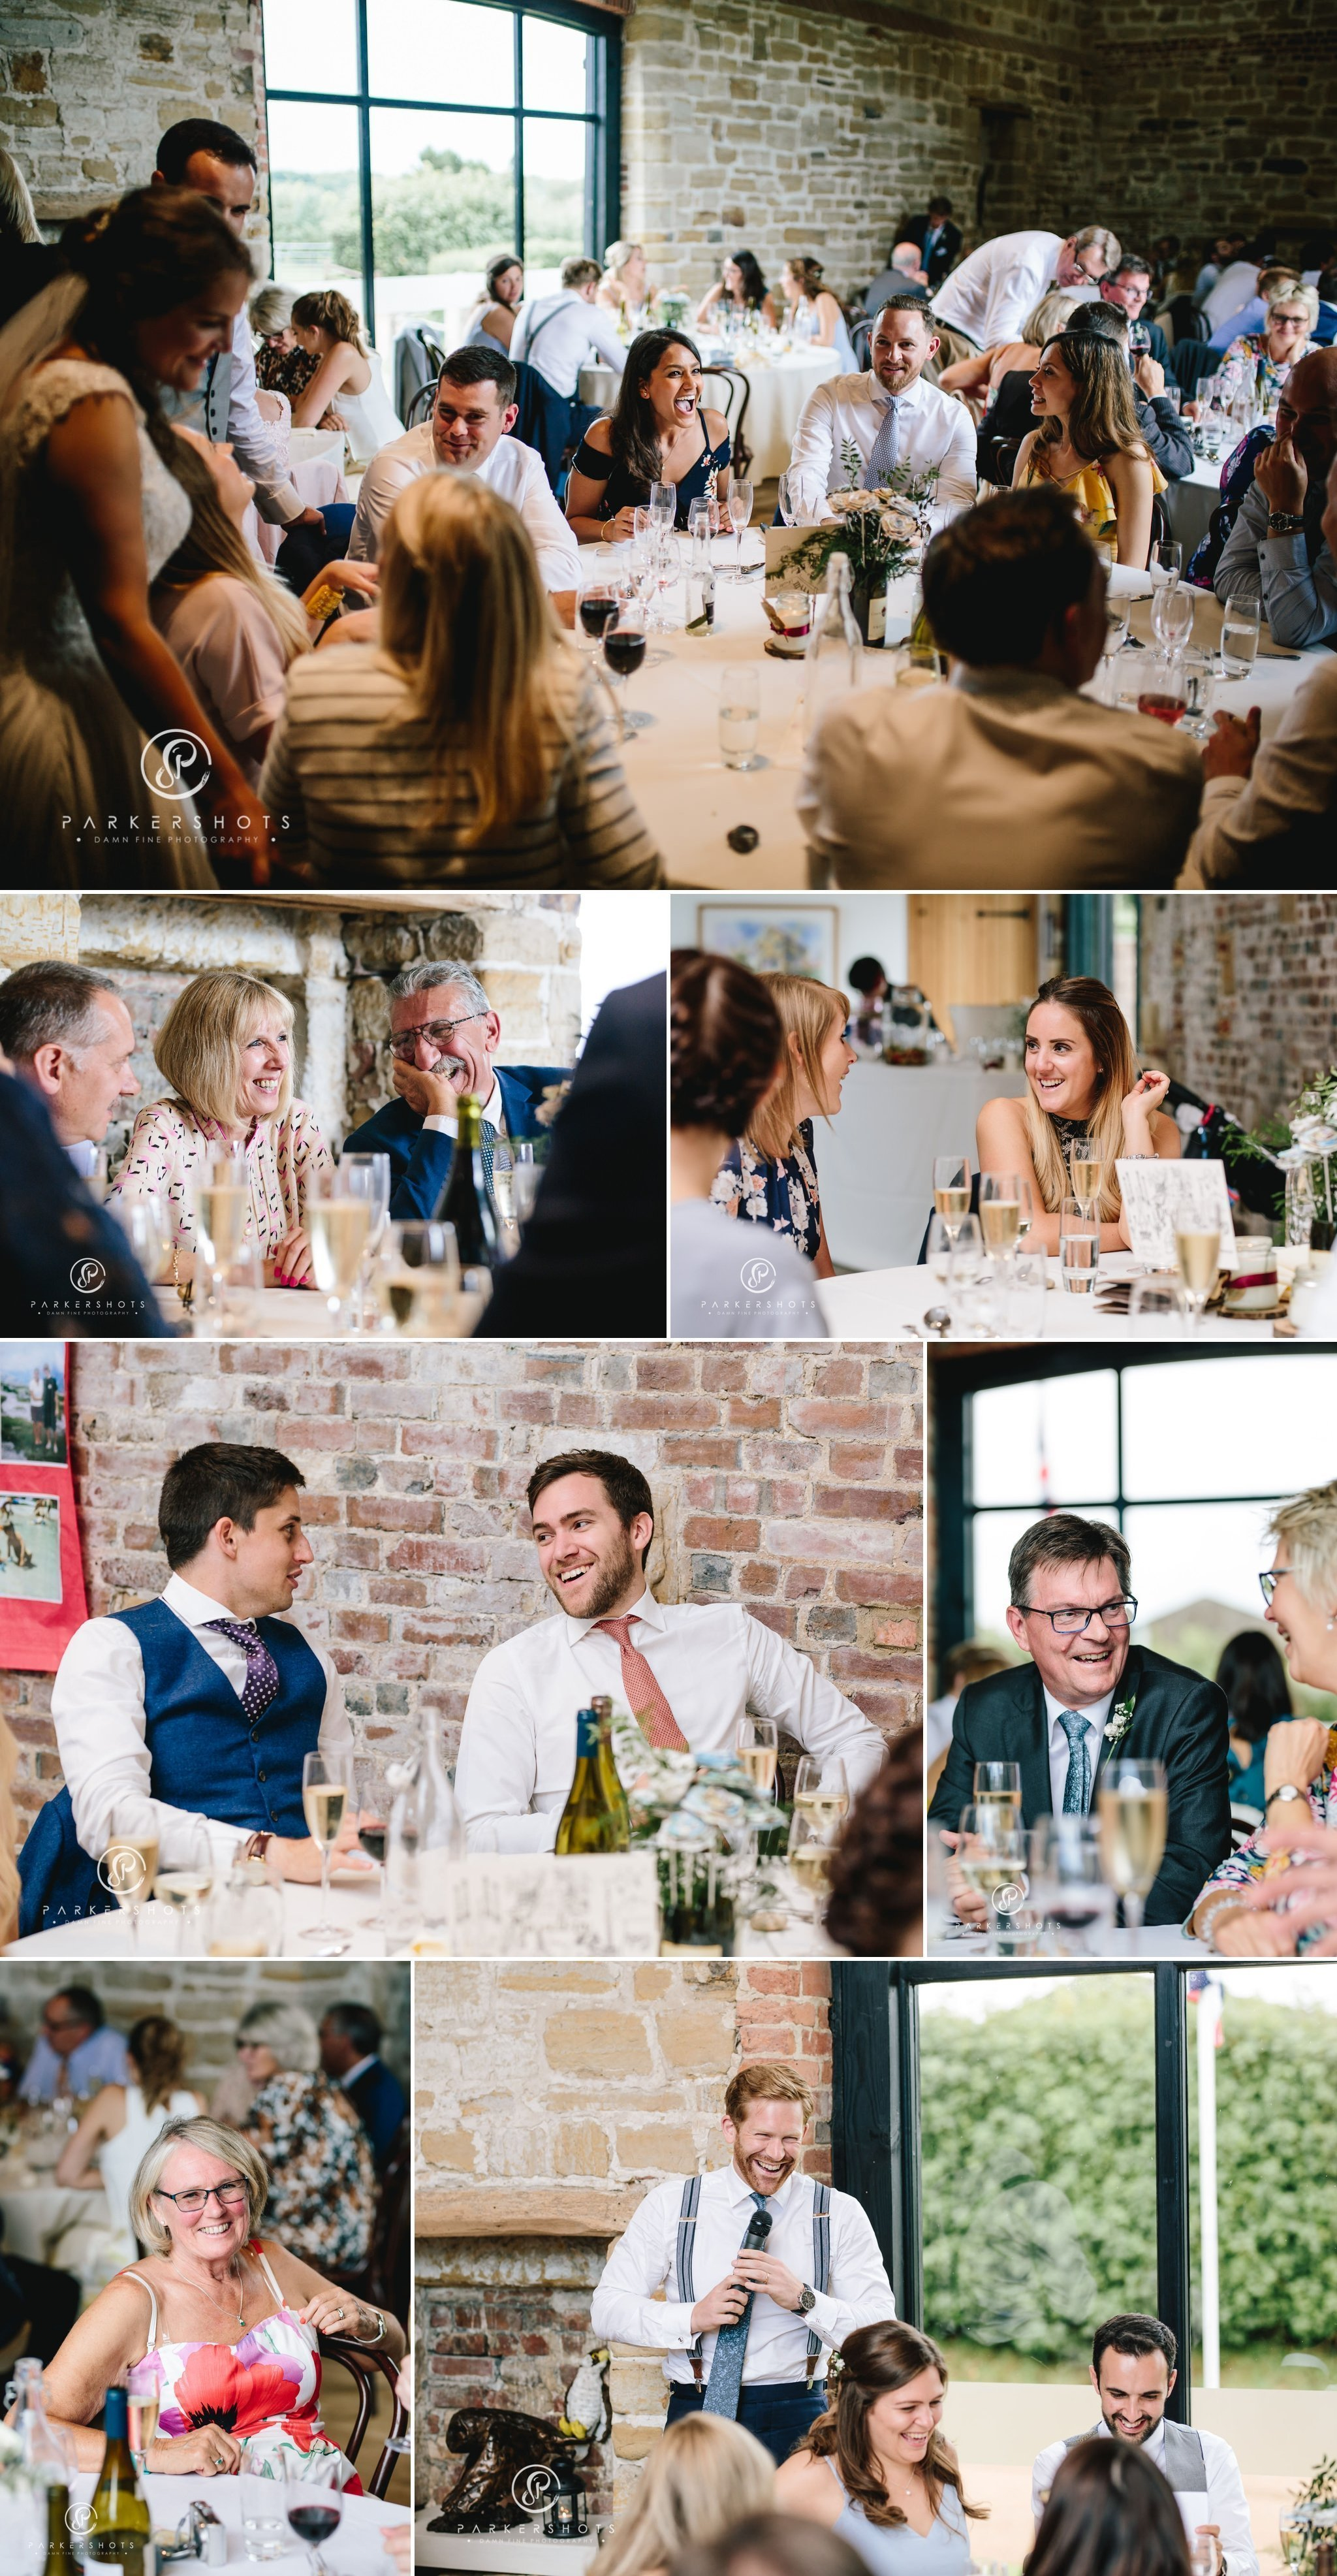 The wedding speeches at wedding at Hendall Manor Barns